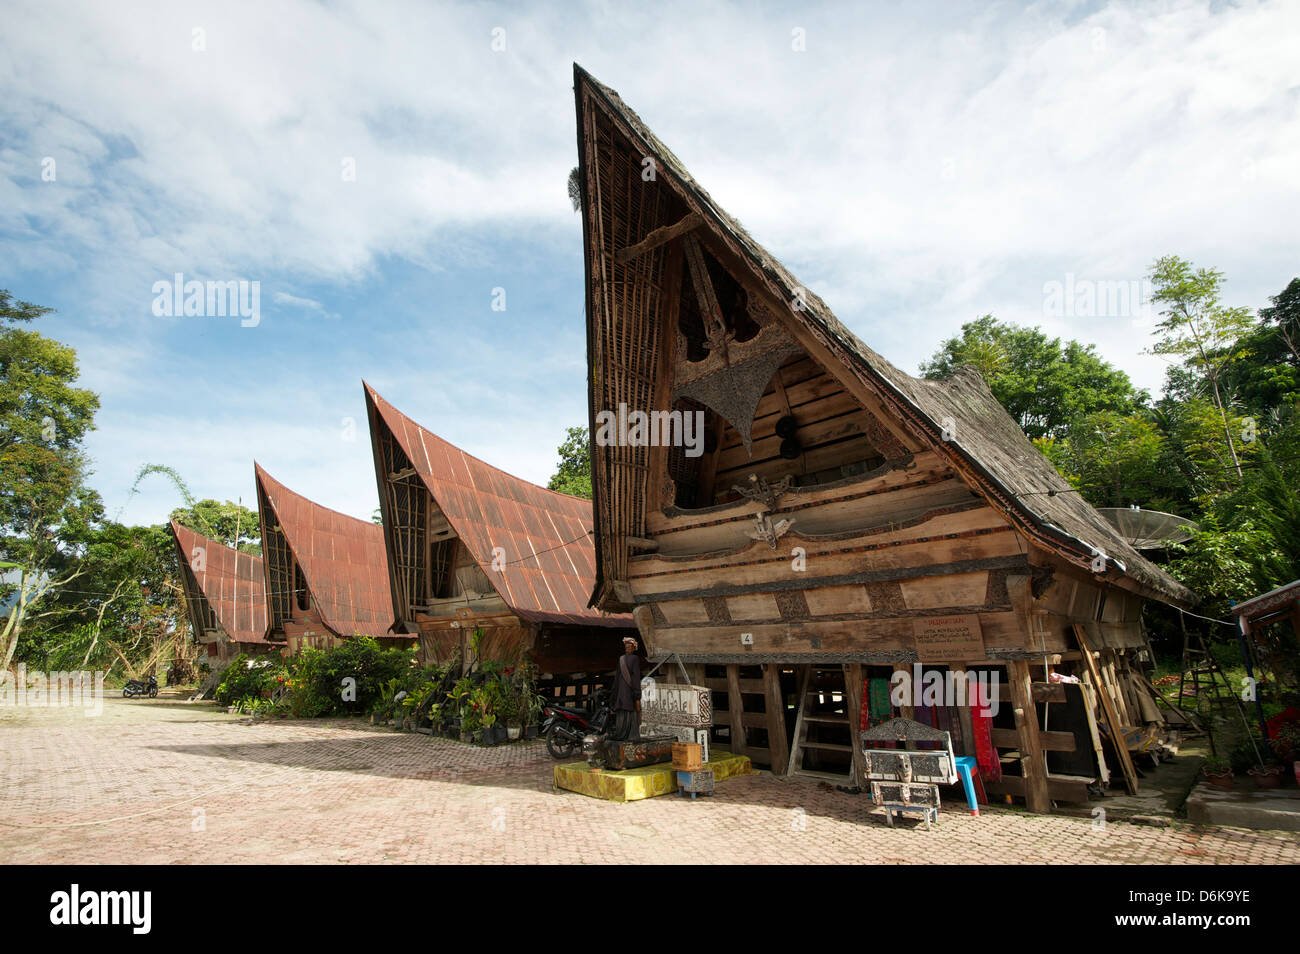 Batak Toba village houses with high ended roof and tribal carvings, Tomuk, Samosir Island, Sumatra, Indonesia, Southeast - Stock Image